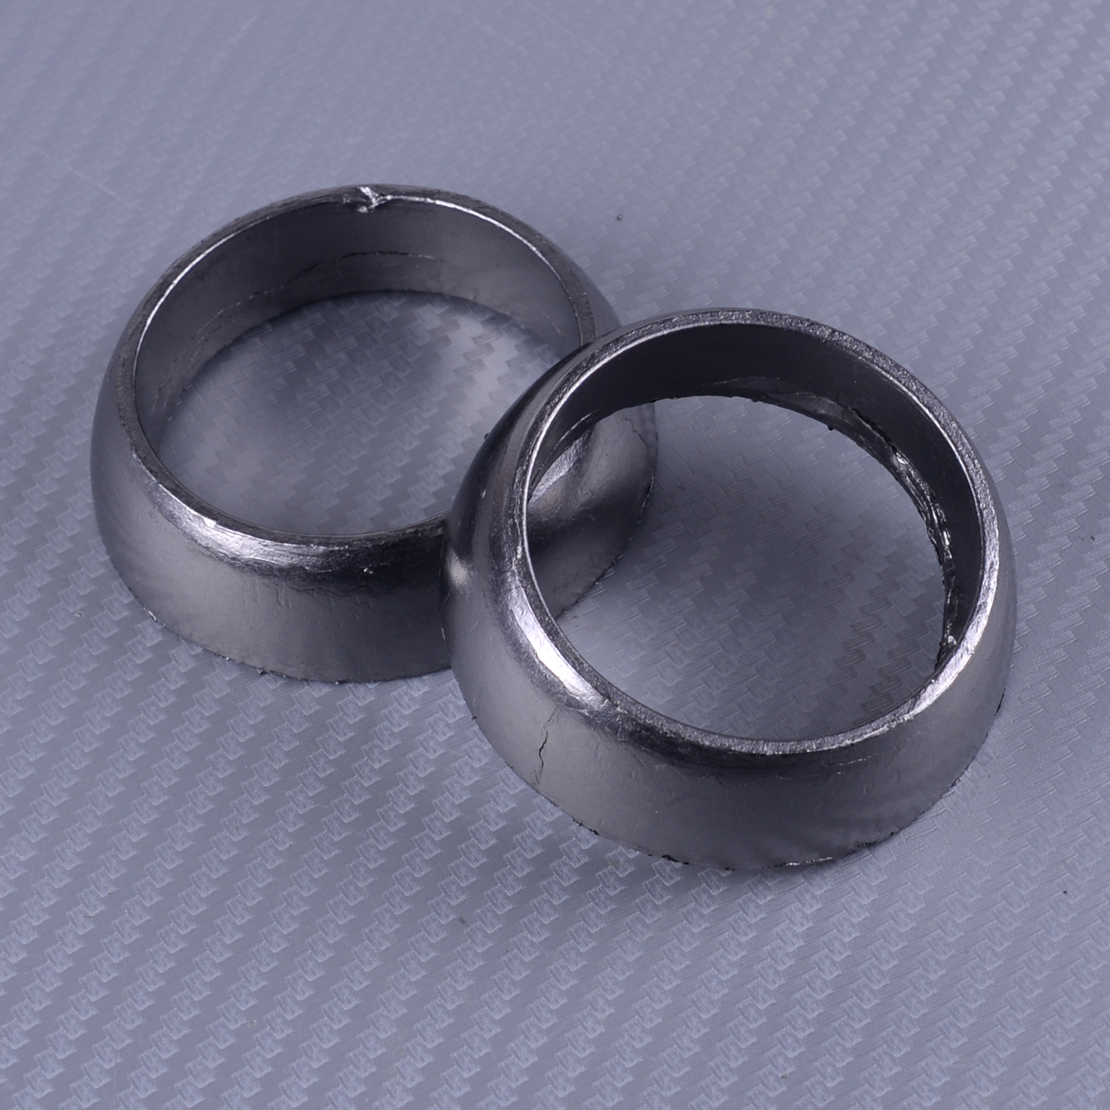 DWCX 2Pcs 3610047 Metal Silver Twin Exhaust Donut Seal Gasket Fit for <font><b>Polaris</b></font> <font><b>Sportsman</b></font> 600 700 <font><b>800</b></font> image